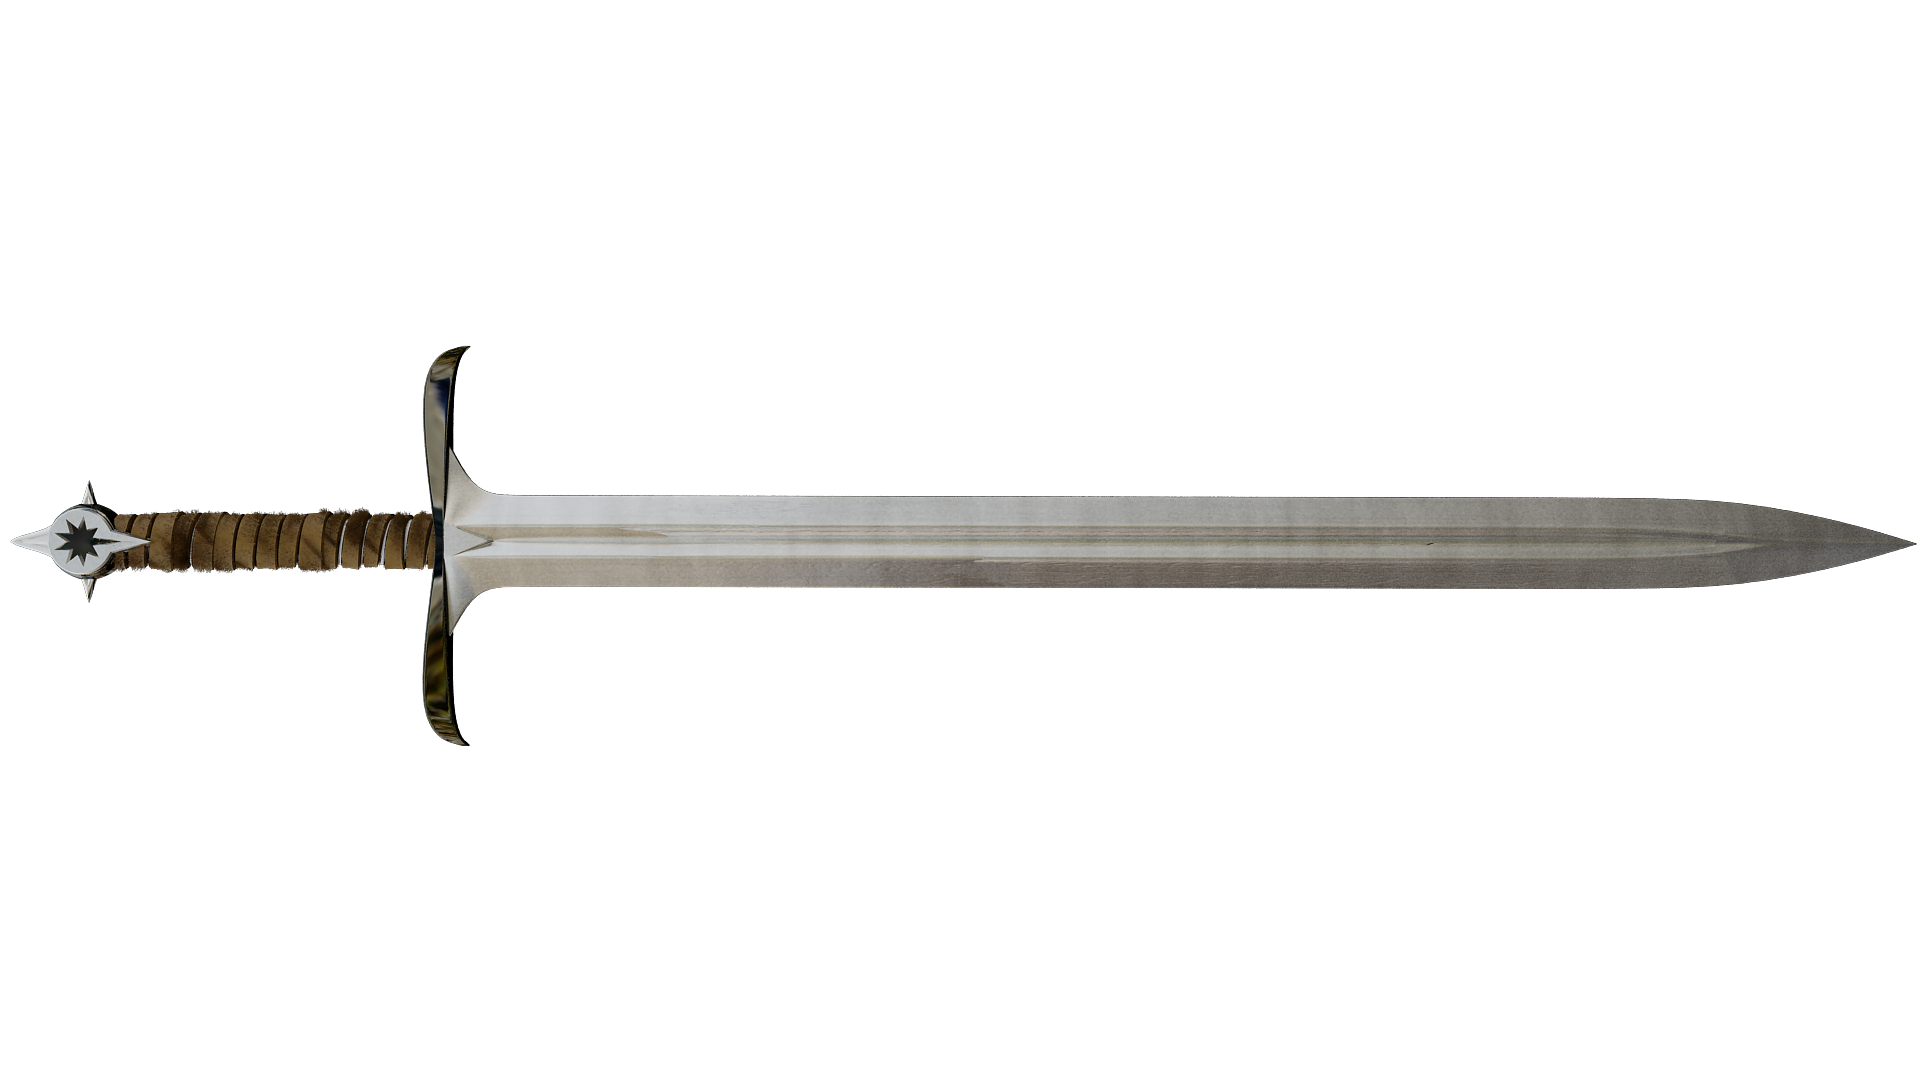 Les hybridations Sword-hd-png-sword-png-image-1920